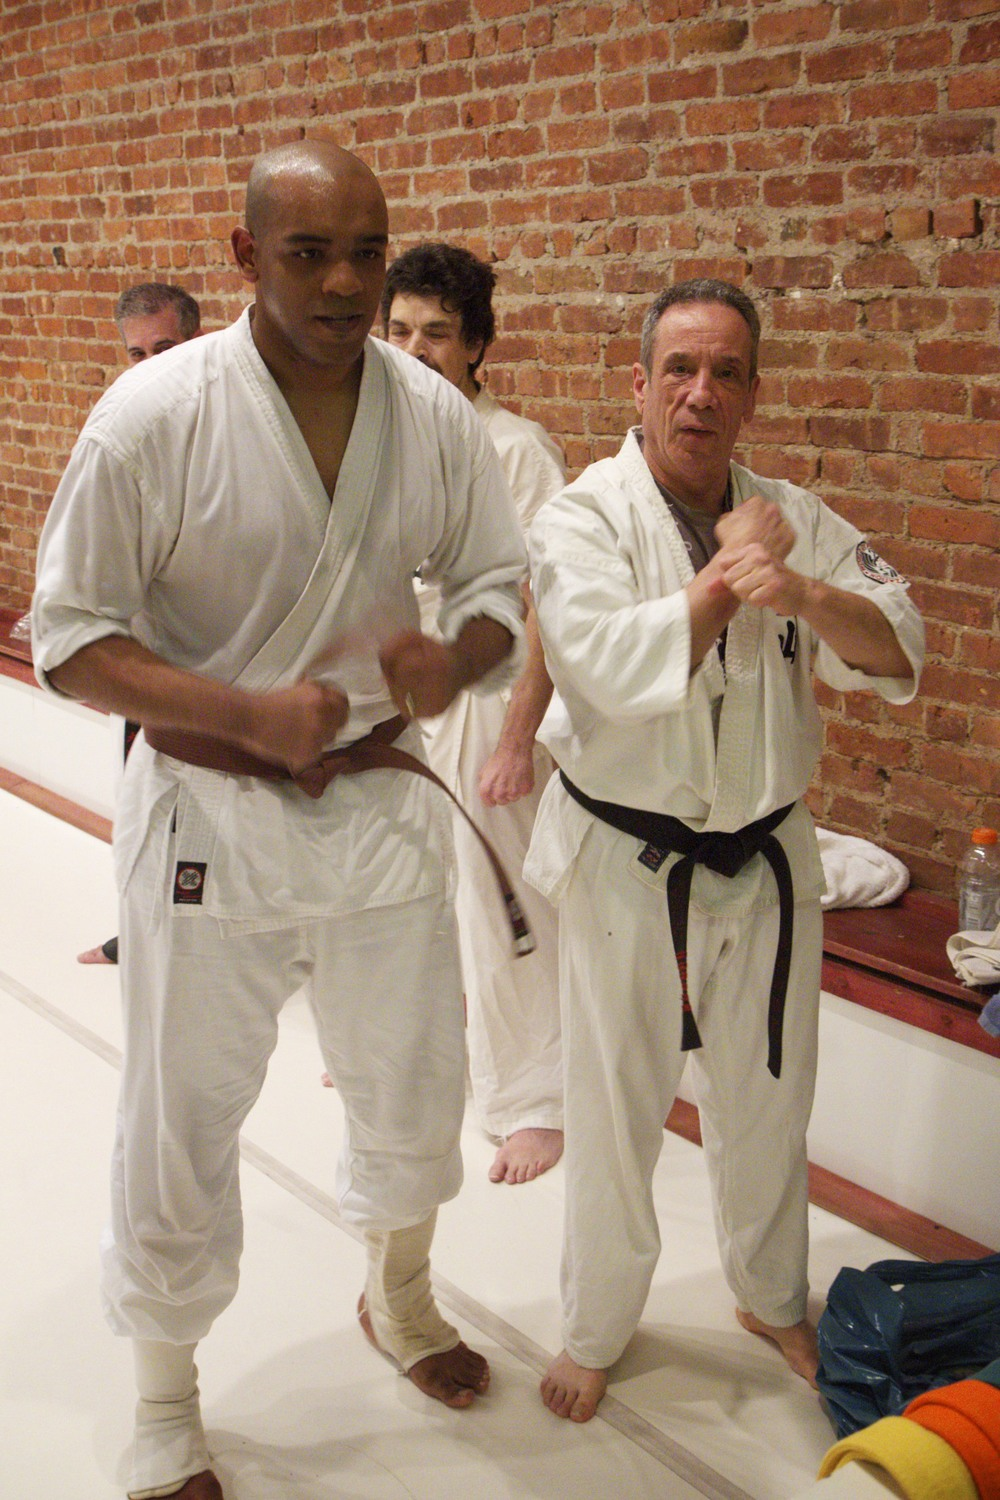 Newly-minted Brown belt, March 2012